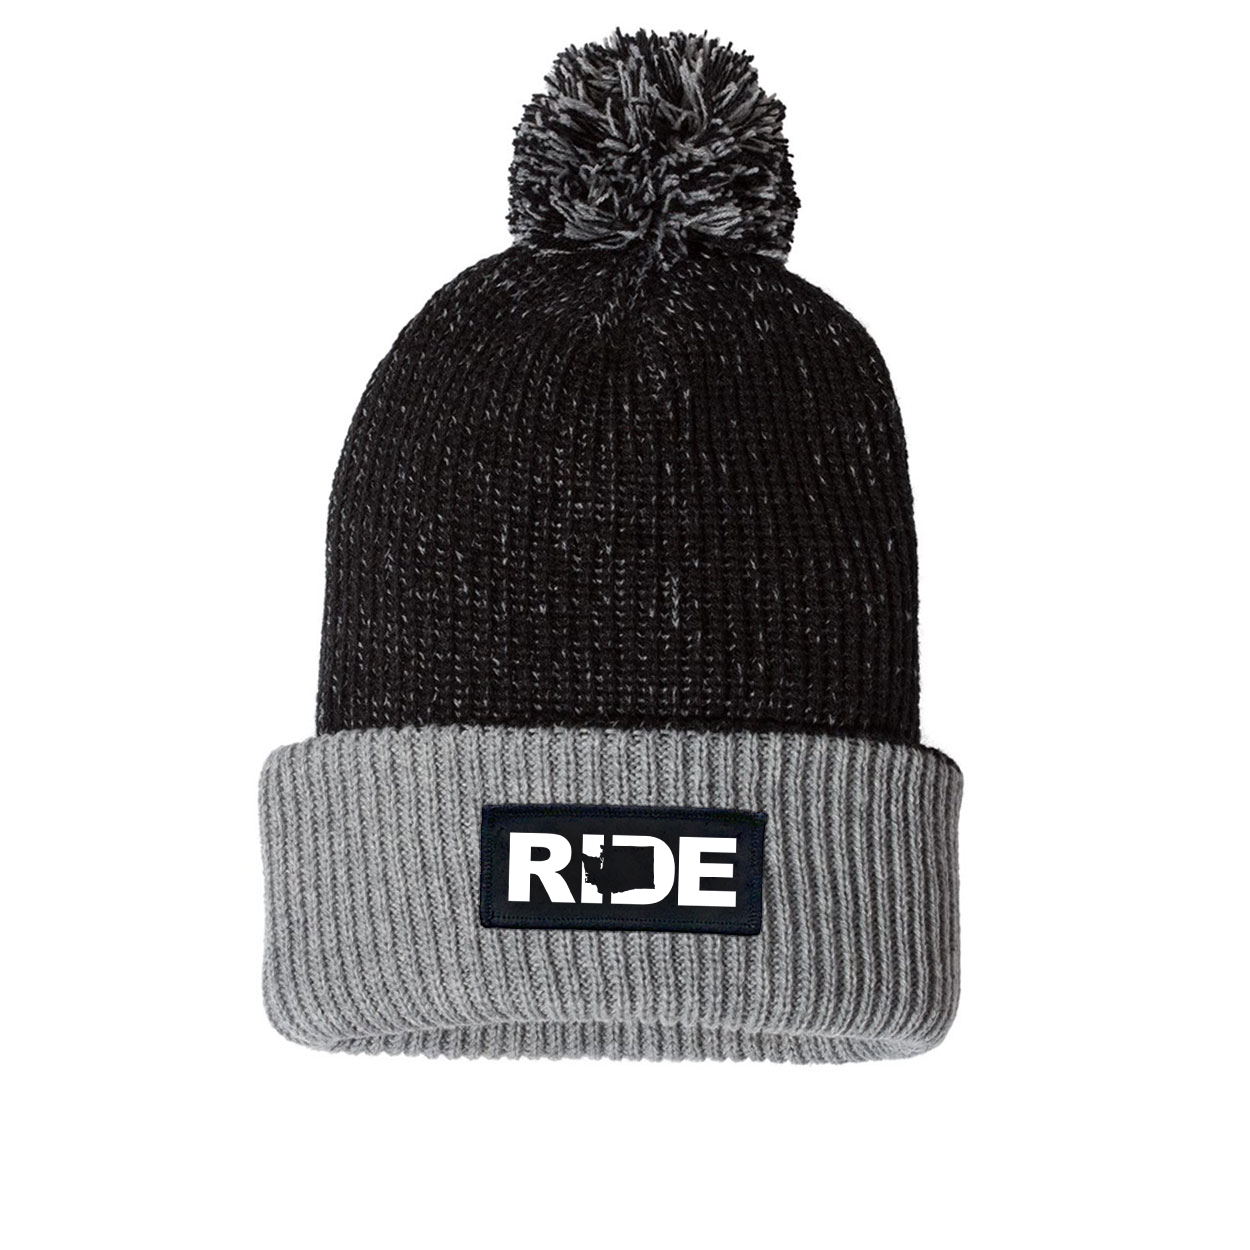 Ride Washington Night Out Woven Patch Roll Up Pom Knit Beanie Black/Gray (White Logo)